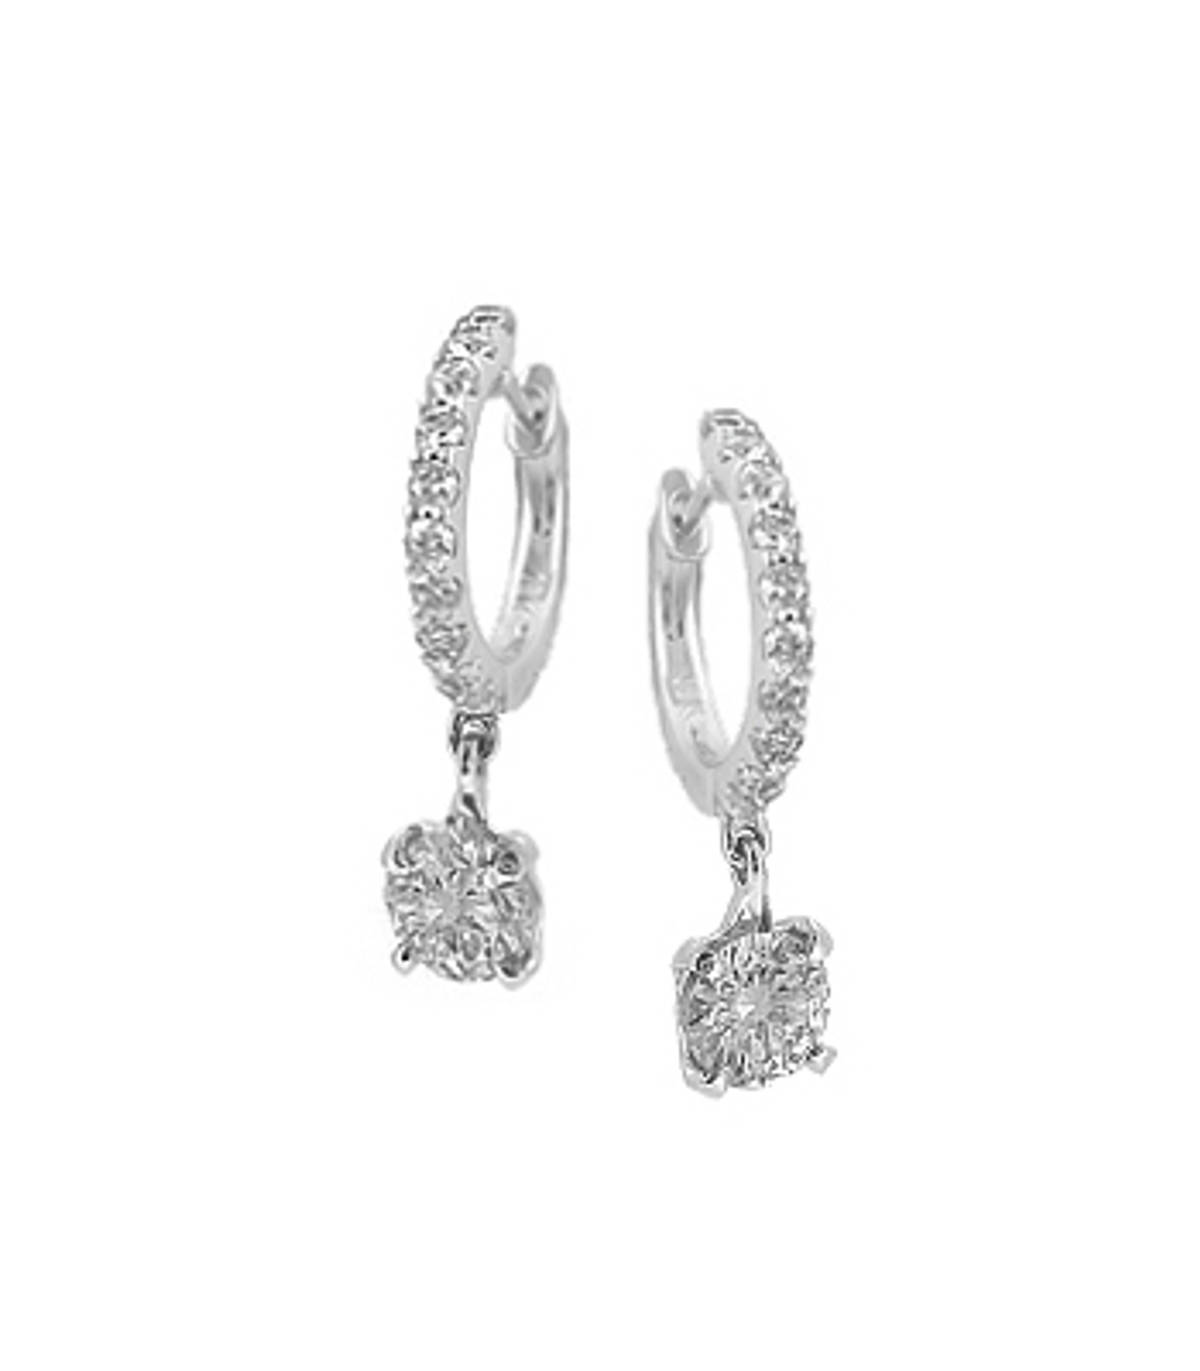 """18k white gold 3 stone brilliant cut diamond hoop earrings. The total diamond weight is 1.20 carats. The diamonds have a """"Brilliant"""" cut. 18ct white gold. Made in Ireland."""